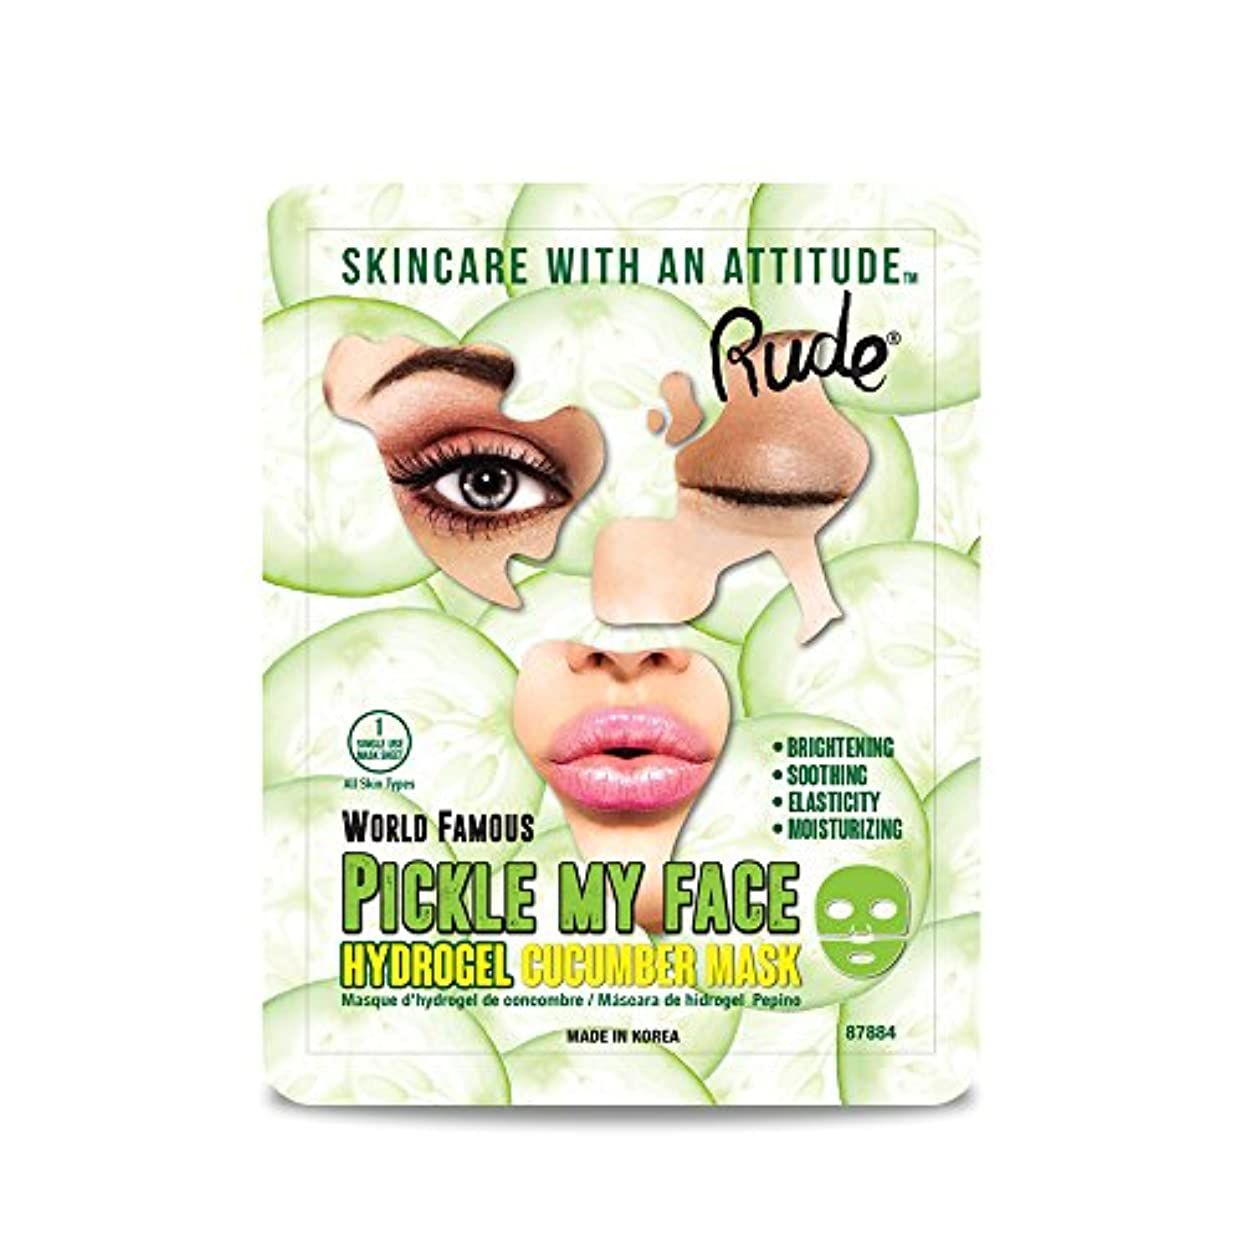 狭い三角形利得(3 Pack) RUDE Pickle My Face Hydrogel Cucumber Mask (並行輸入品)